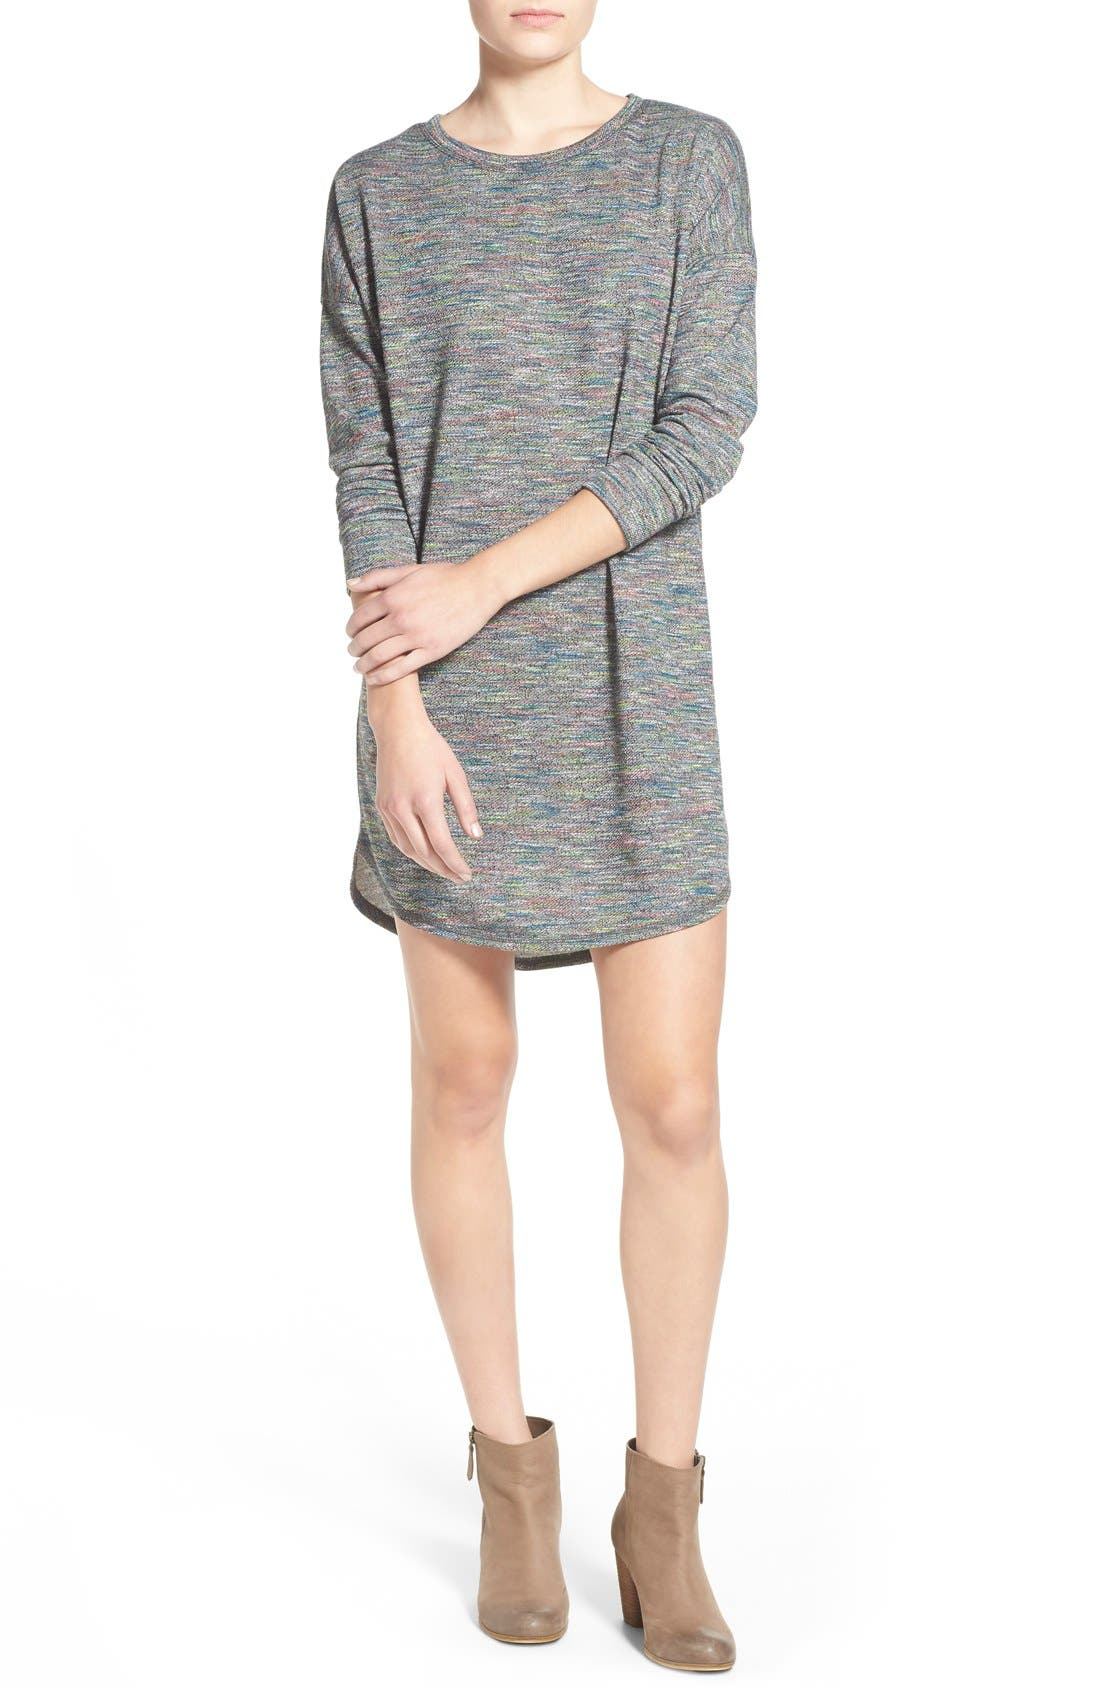 Alternate Image 1 Selected - One Clothing Space Dye Sweater Dress